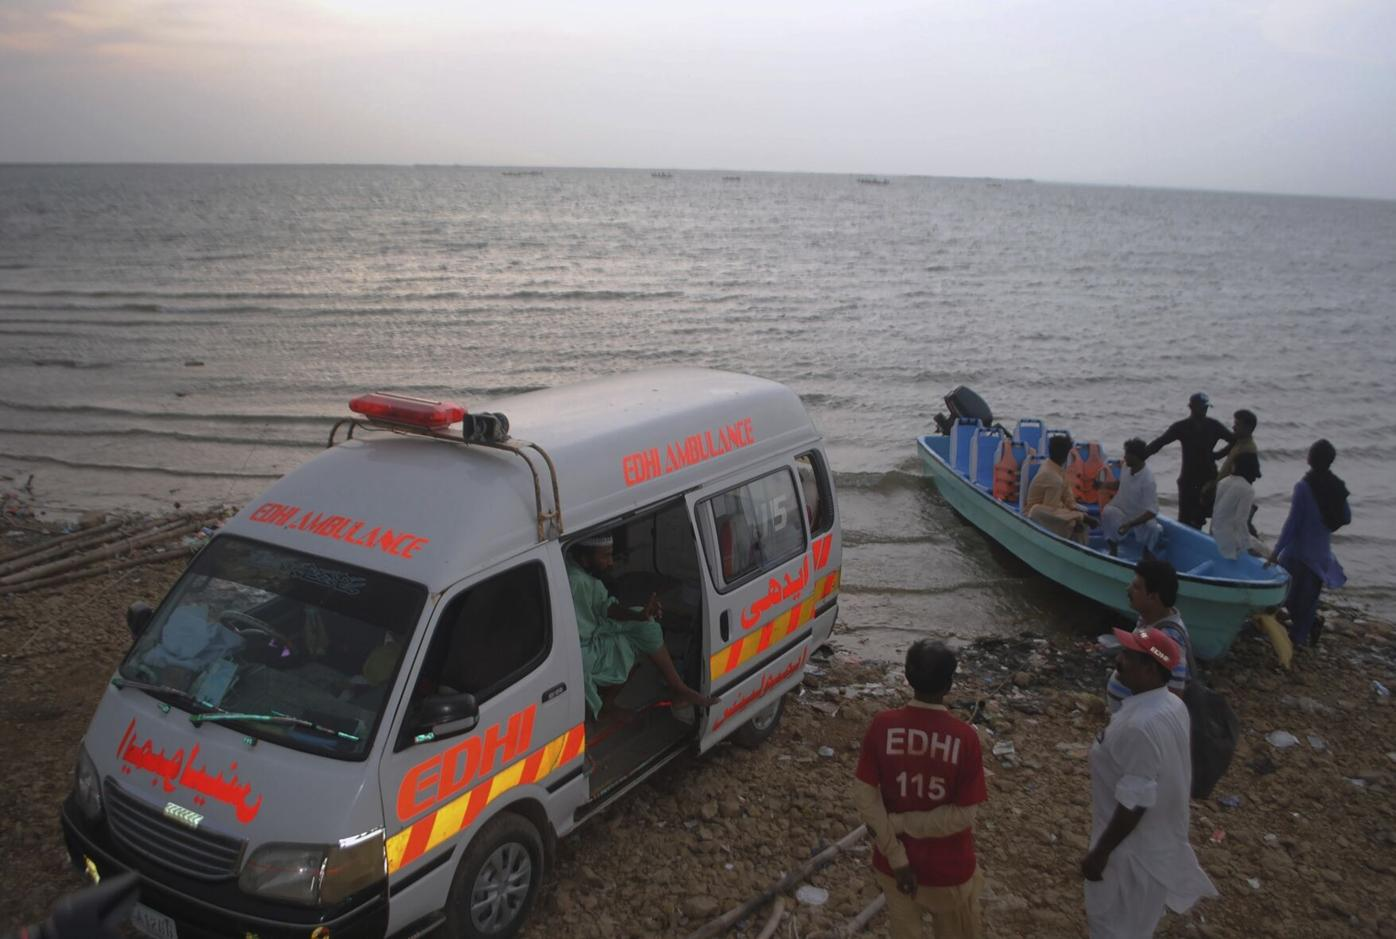 A small boat carrying local tourists capsized on a lake in southern Pakistan on Monday, leaving 10 passengers dead and another three missing, police said.